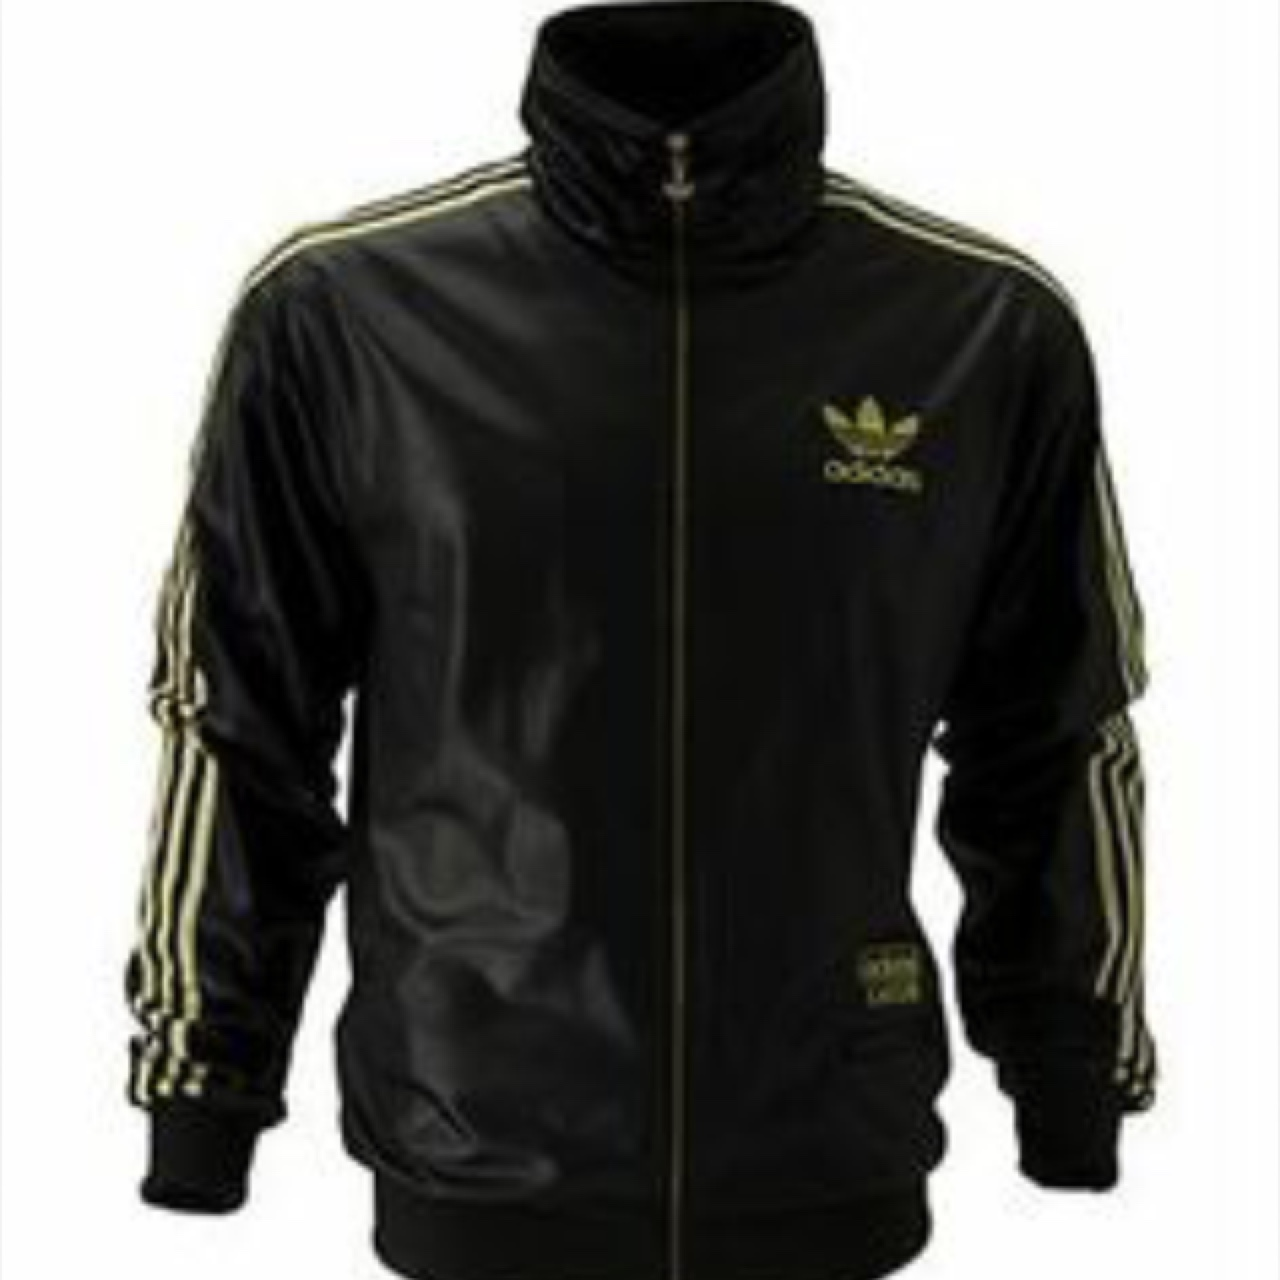 cheap sale new appearance shopping Adidas chile 62 jacket! #retro #vintage. In great... - Depop